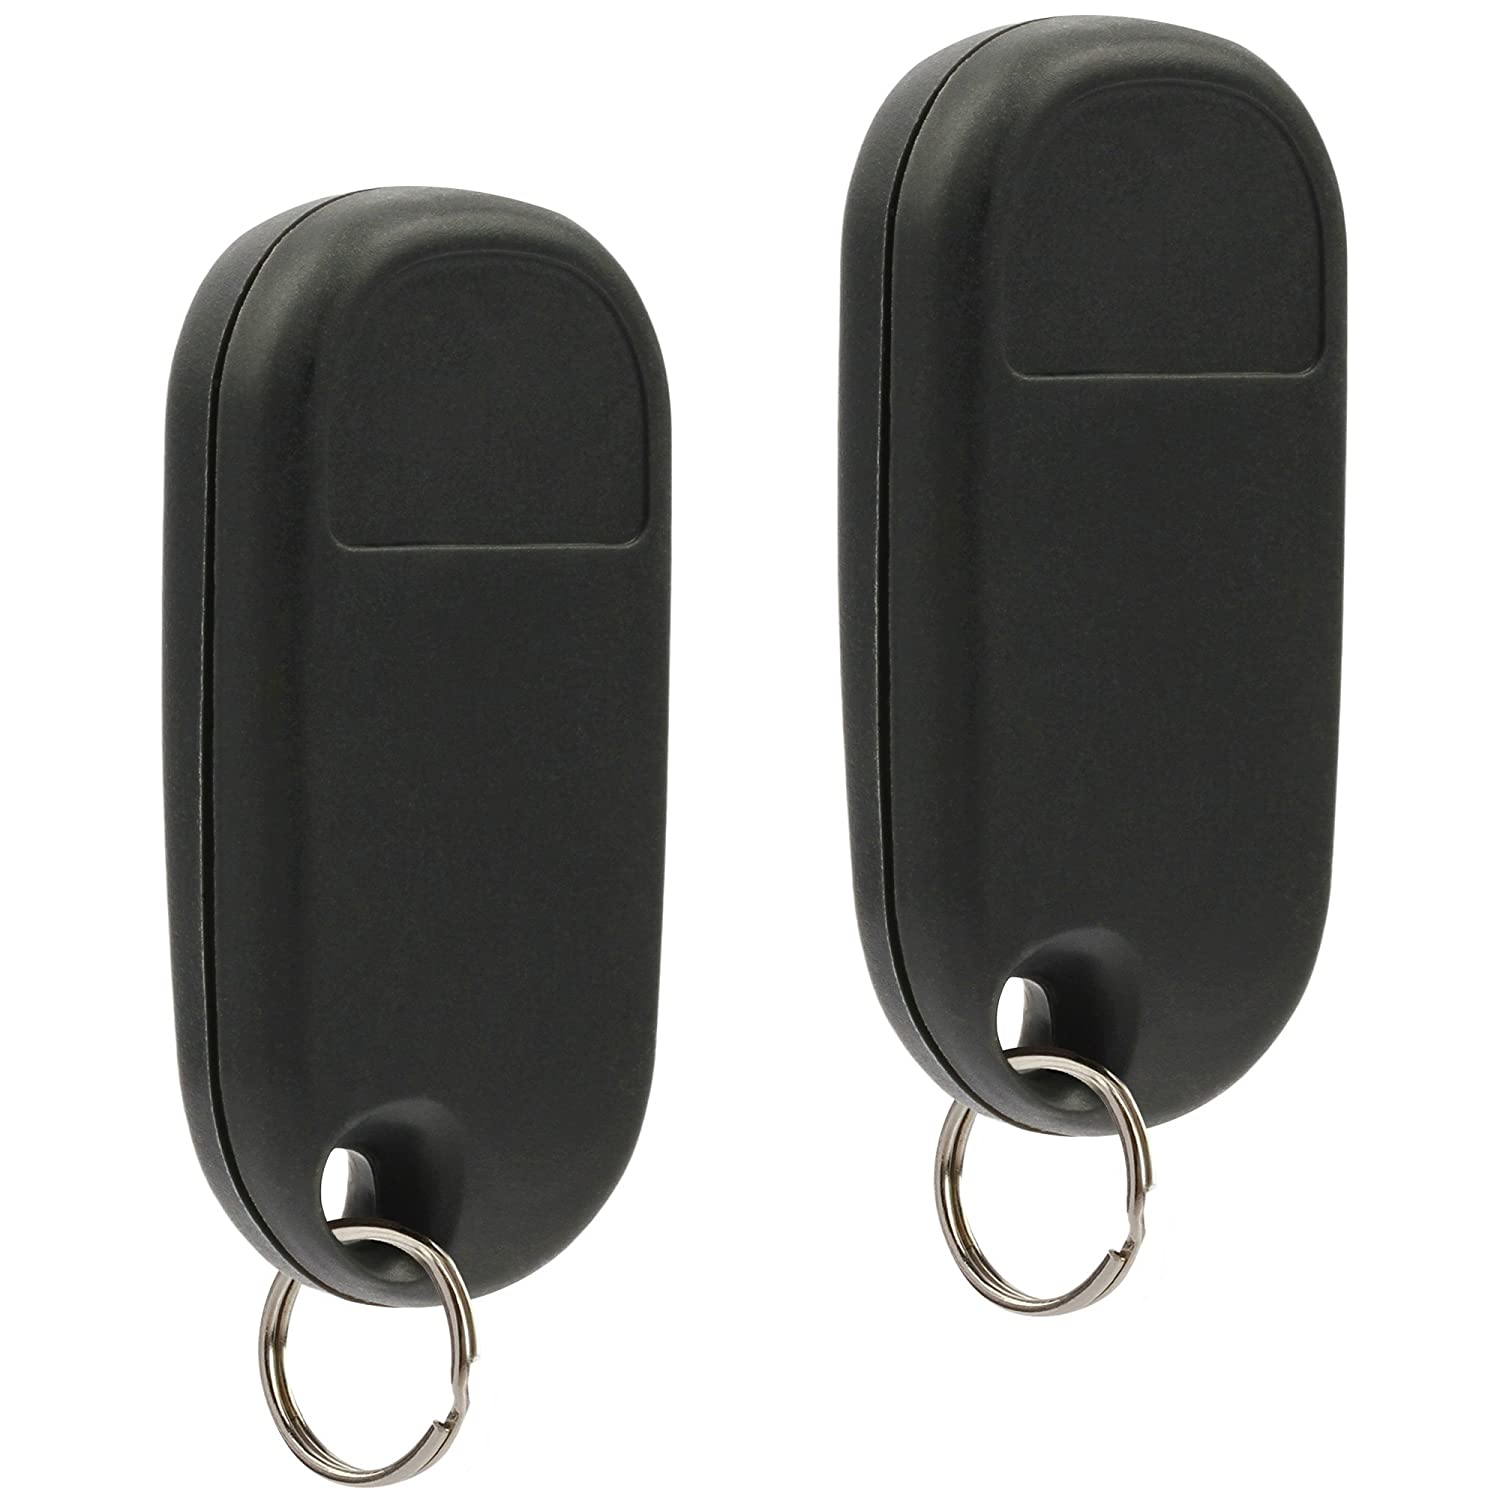 with Instructions 2 Key Fob Keyless Entry Remote fits Honda Civic EX LX DX 2001 2002 2003 2004 2005 NHVWB1U521, NHVWB1U523 Honda Pilot 2003 2004 2005 2006 2007